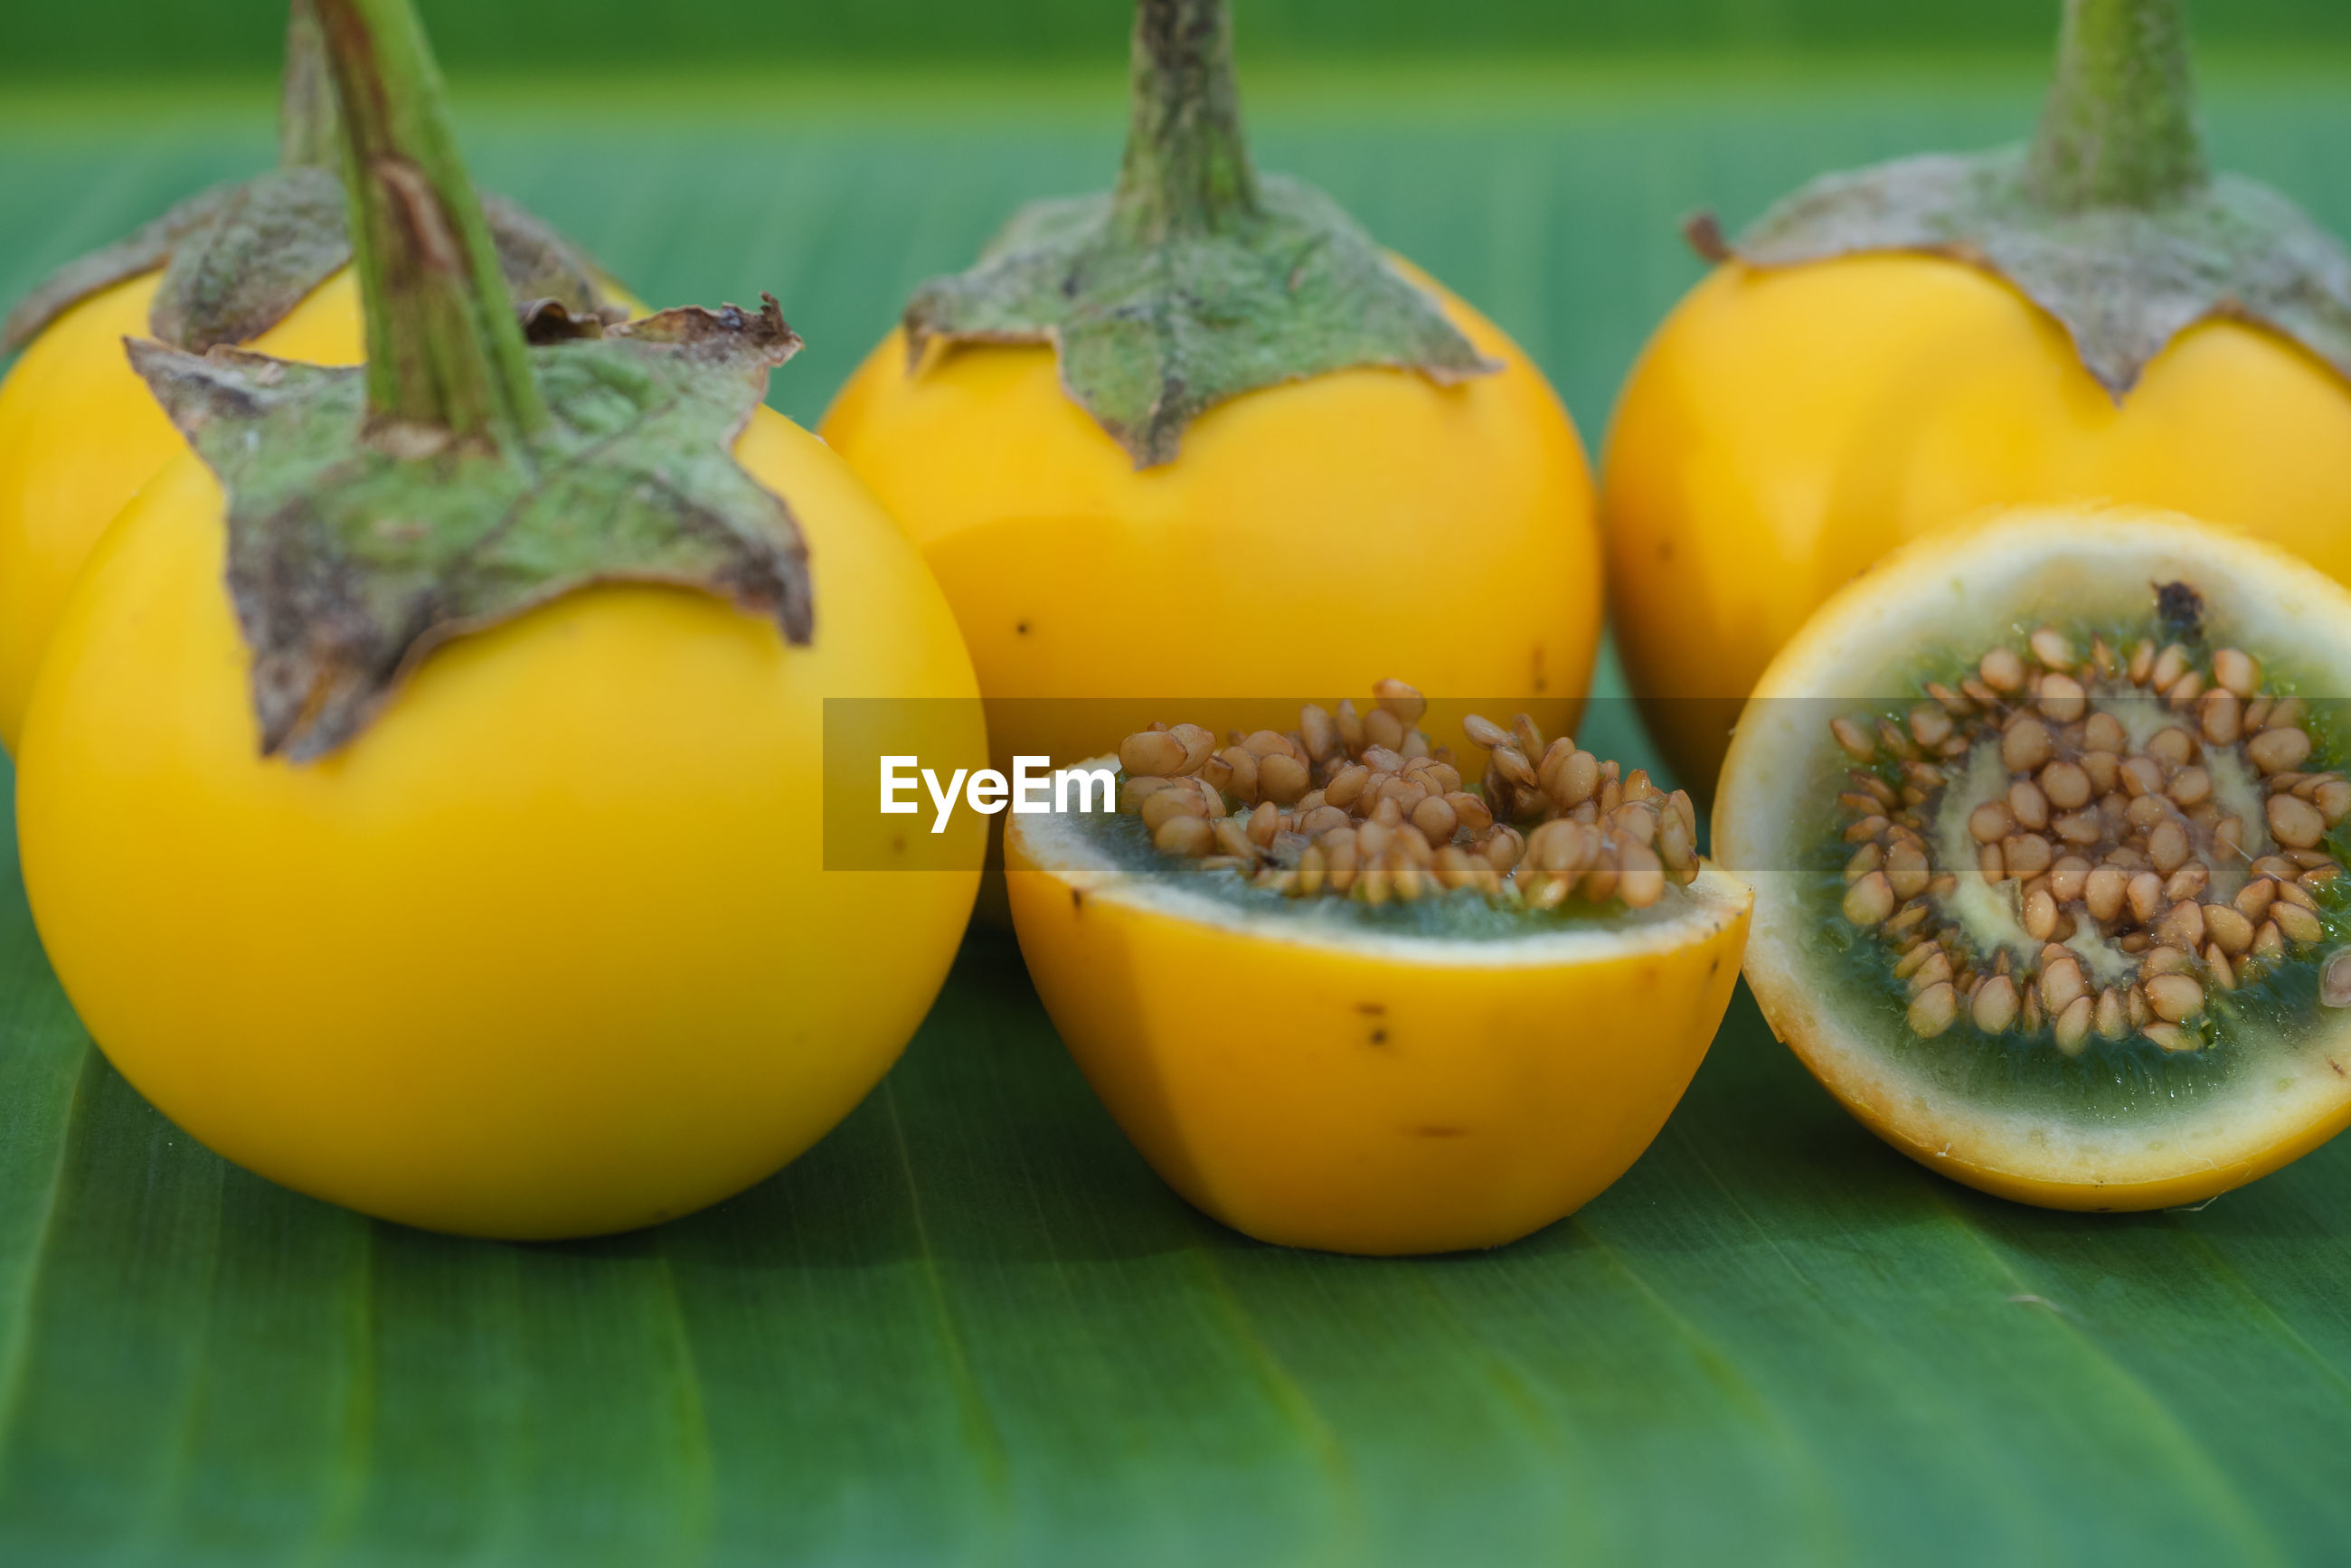 CLOSE-UP OF YELLOW FRUITS IN PLATE